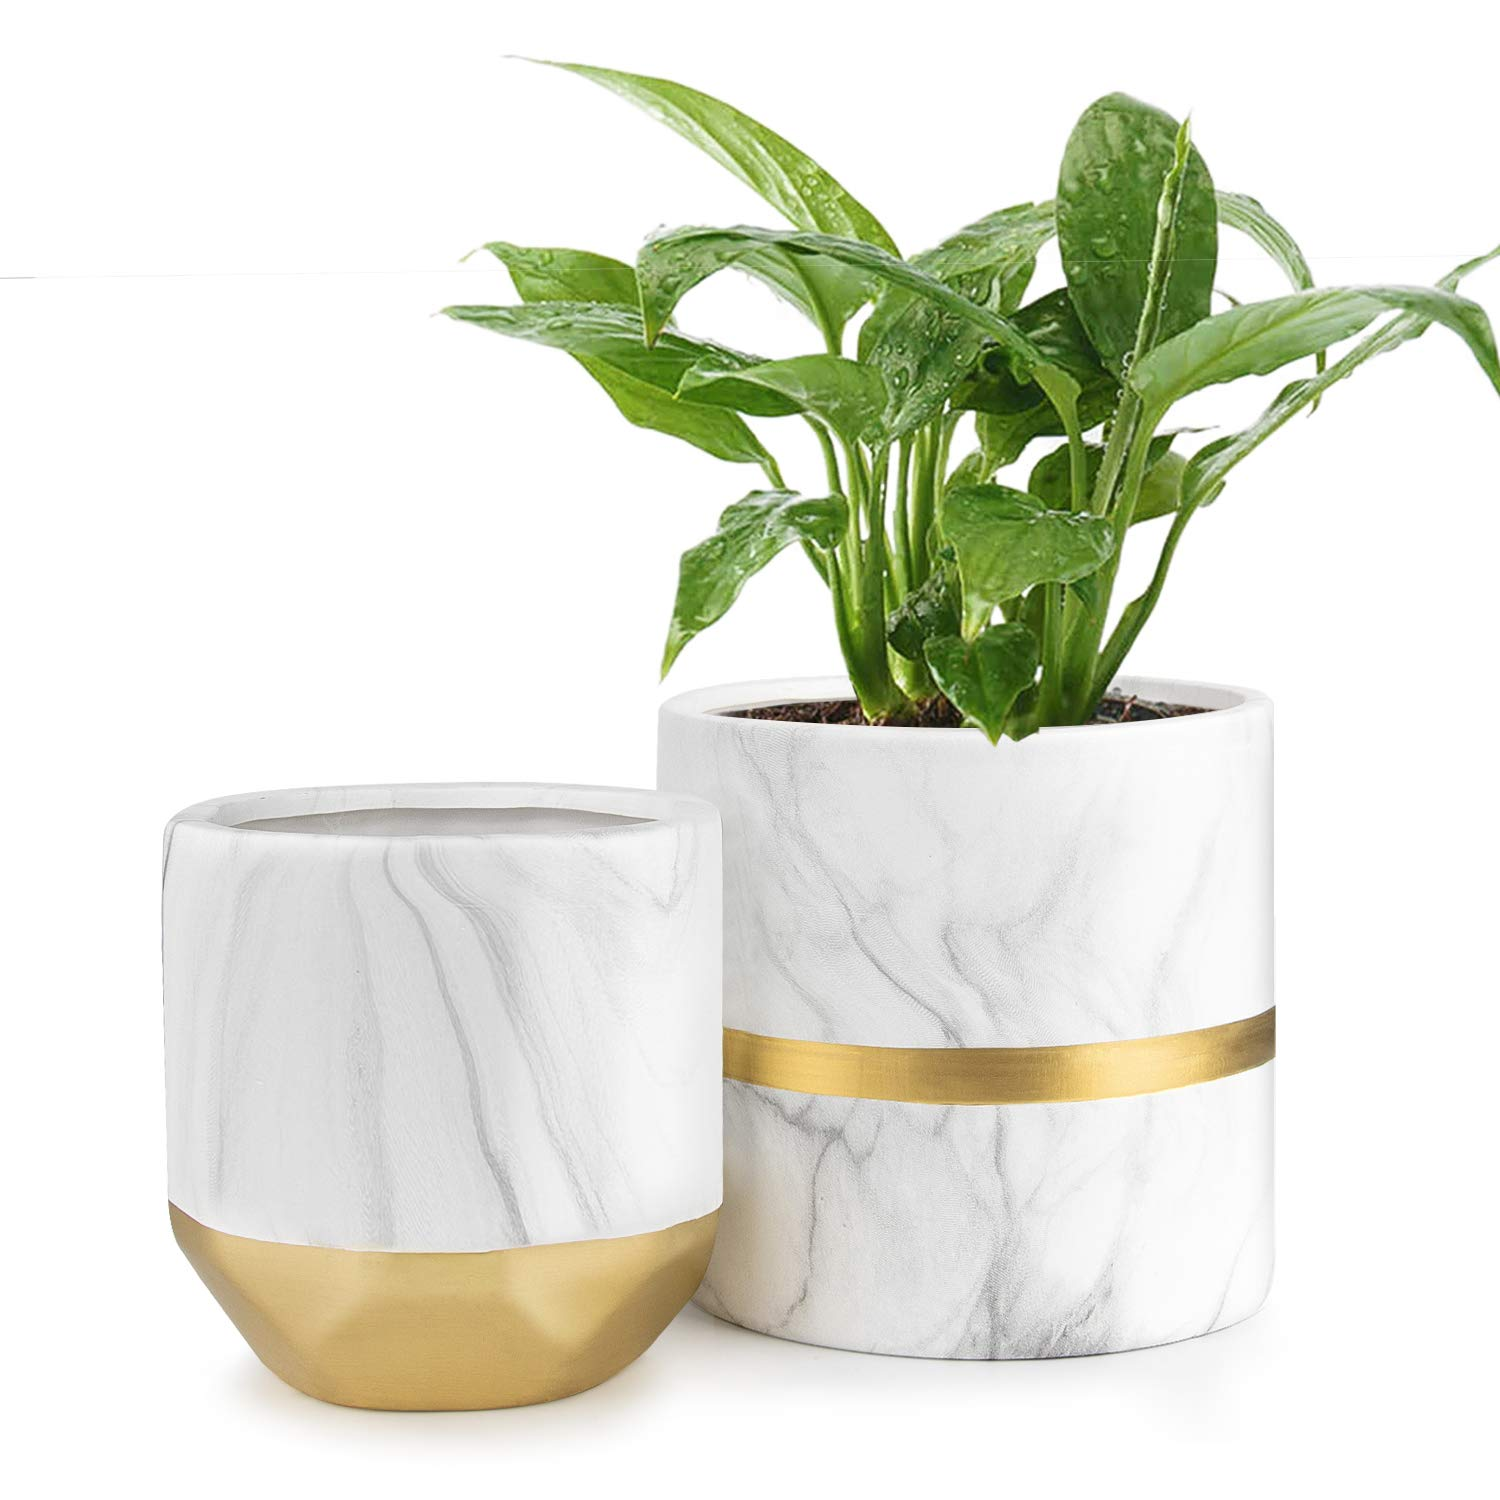 HOMENOTE White Ceramic Flower Pot Garden Planters 6'' Pack 2 Indoor, Plant Containers with Marble Texture and Gold Detailing by HOMENOTE